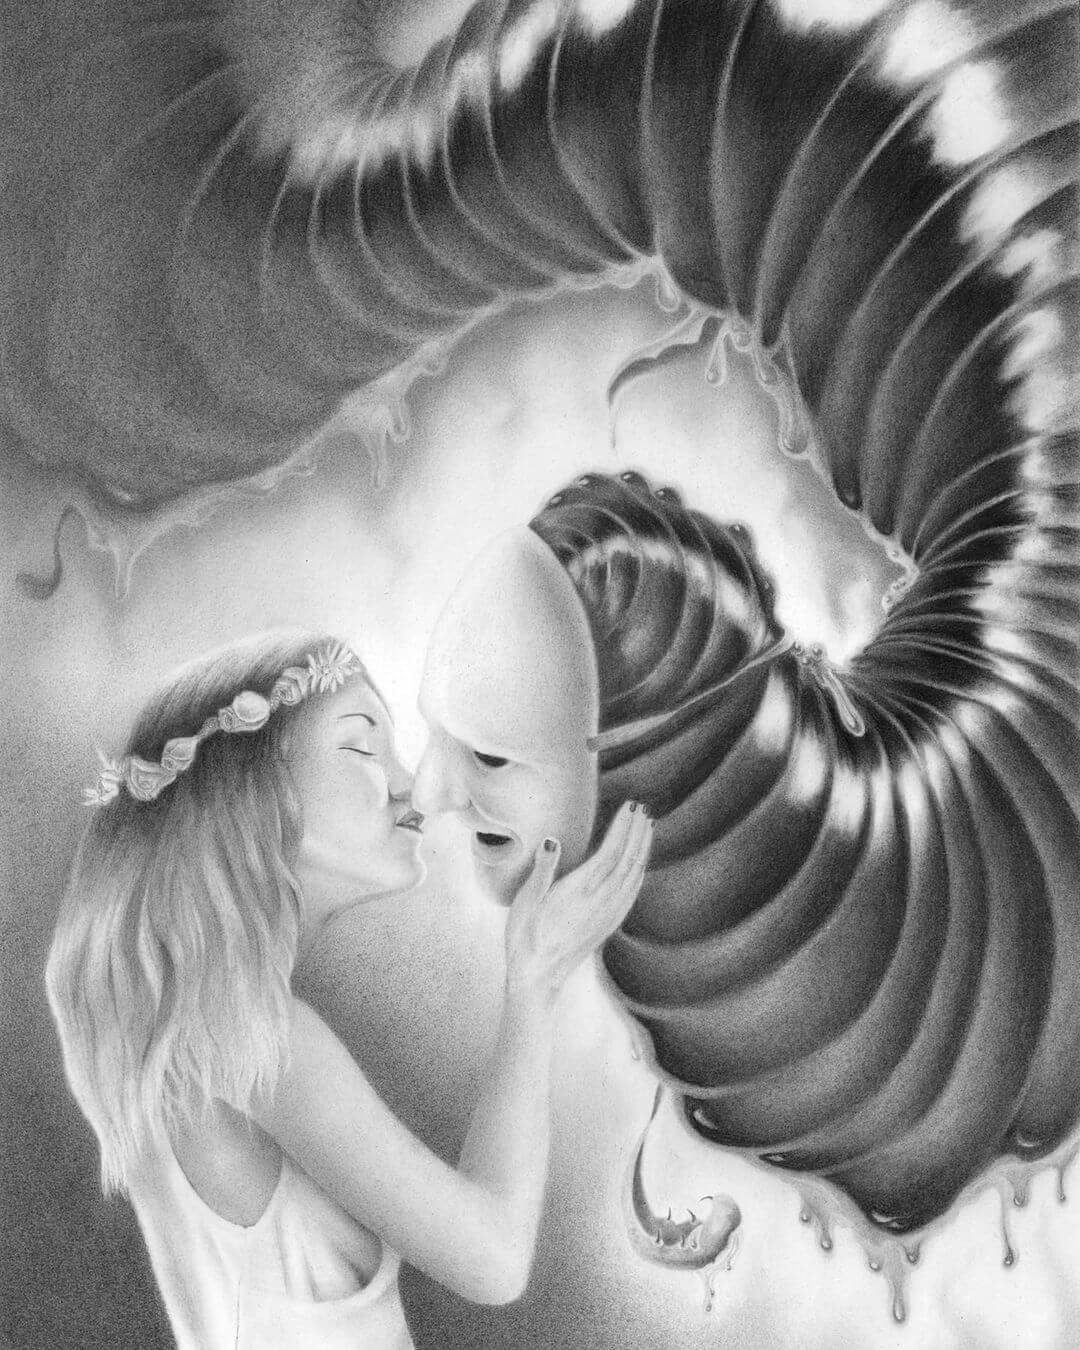 Graphite drawing of a woman kissing a monster by Carlos Fernández the Penrider